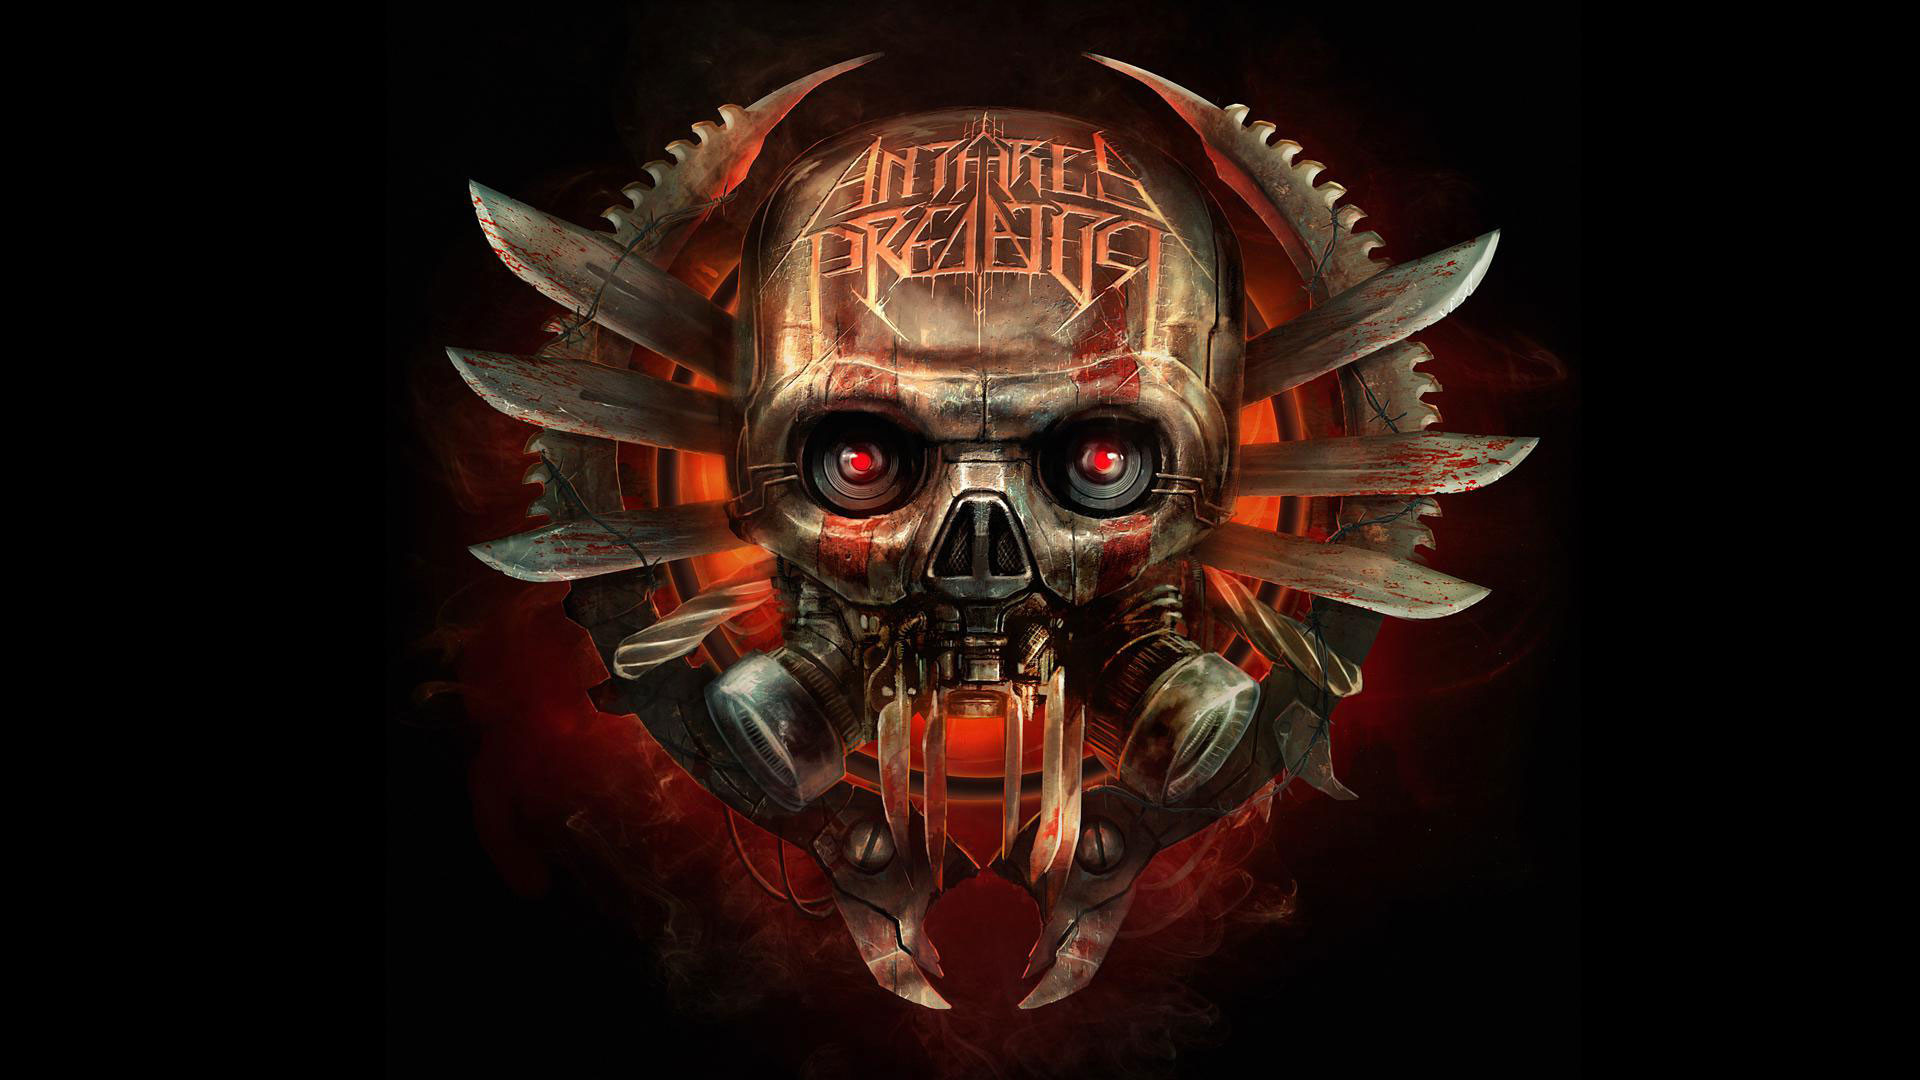 Fantastic Wallpaper Logo Danger - 696188-vertical-skull-3d-wallpaper-1920x1080-for-samsung  Photograph_119520.jpg